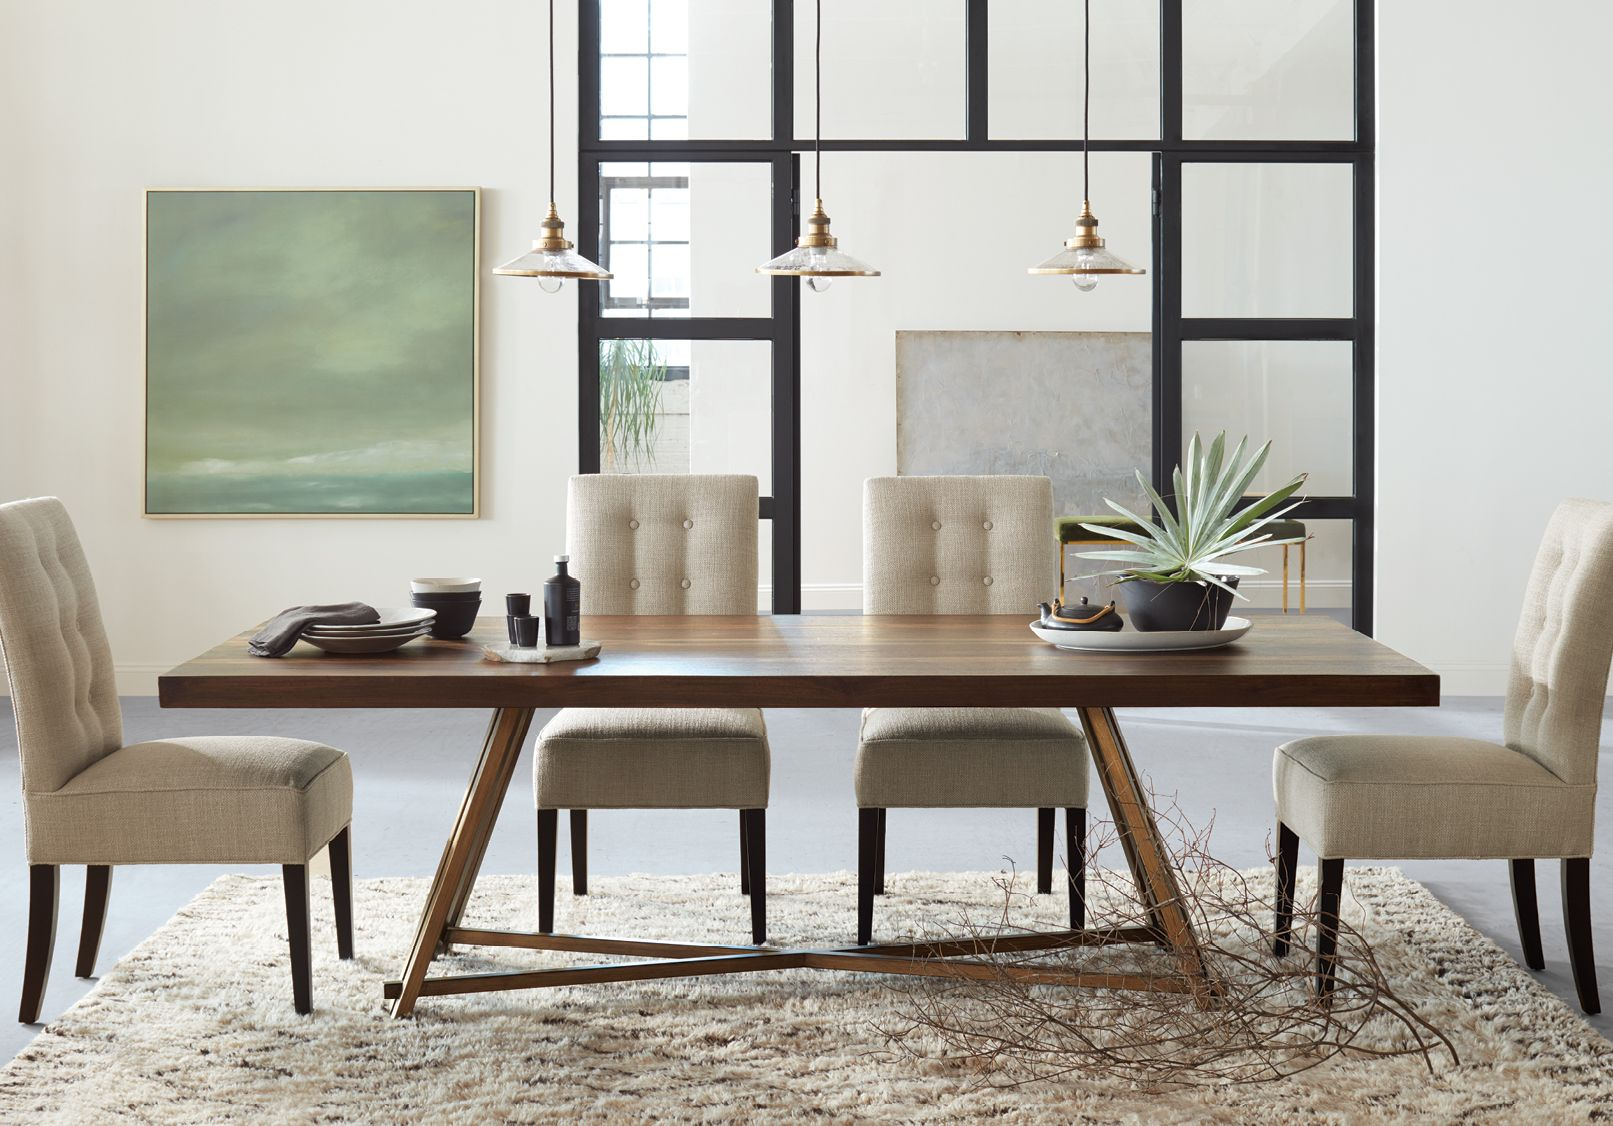 The Nika Dining Table Pairs Structured Lines With The Organic